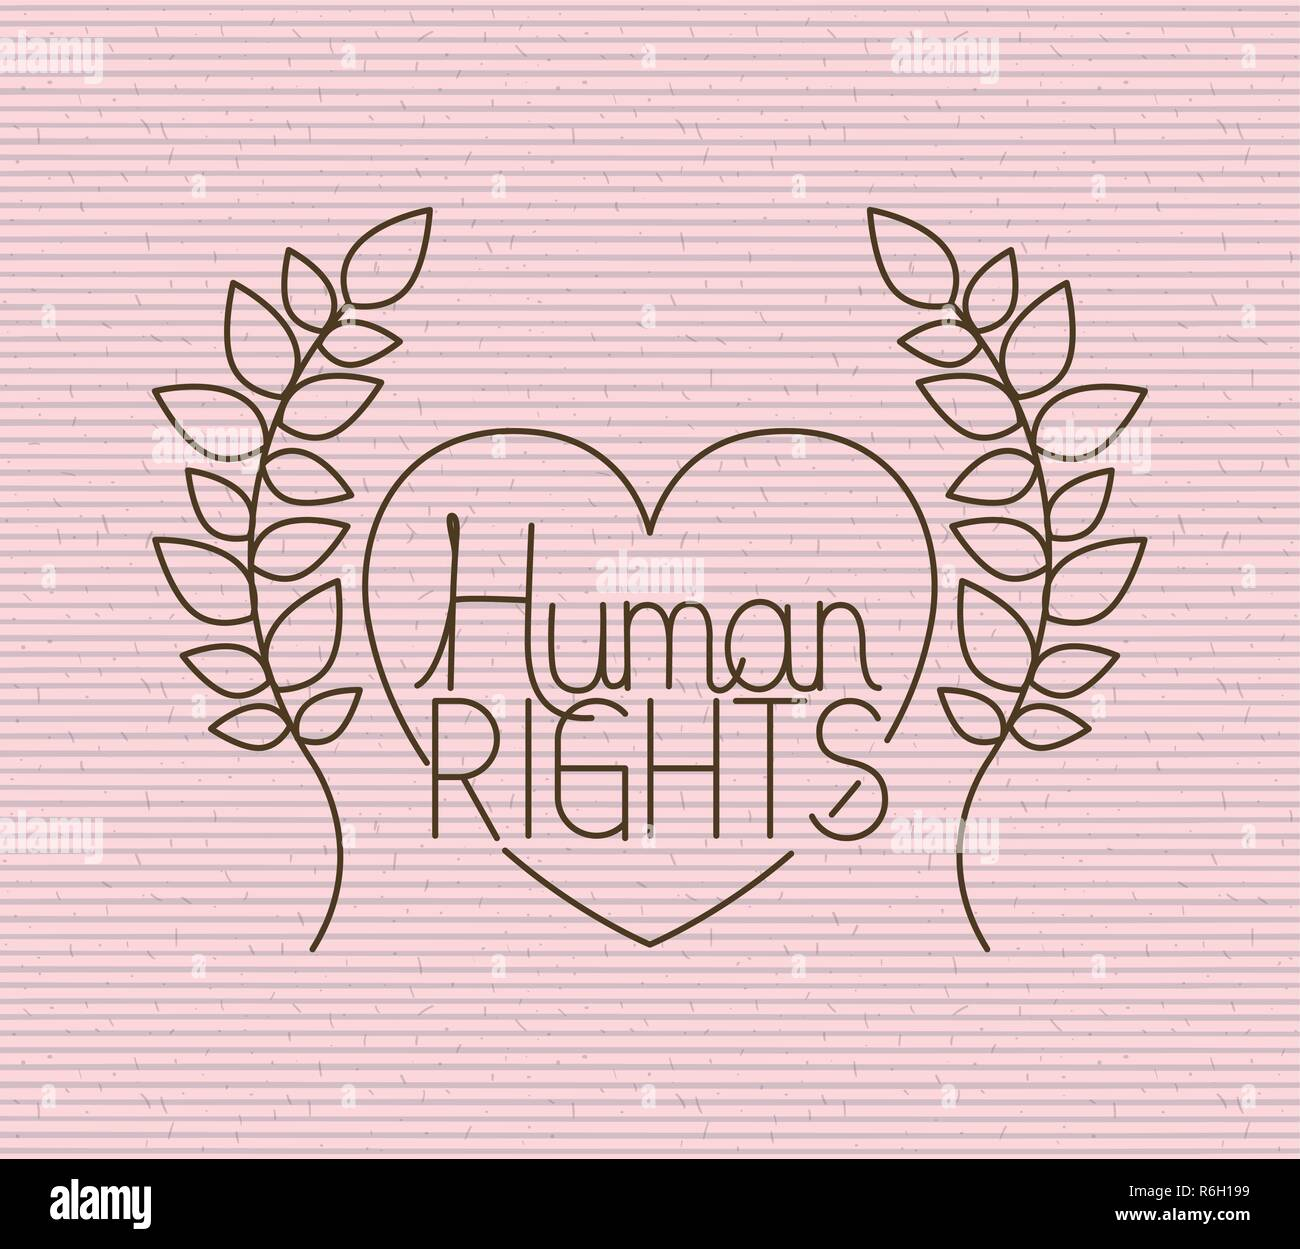 Heart With Wreath Human Rights Drawns Stock Vector Art